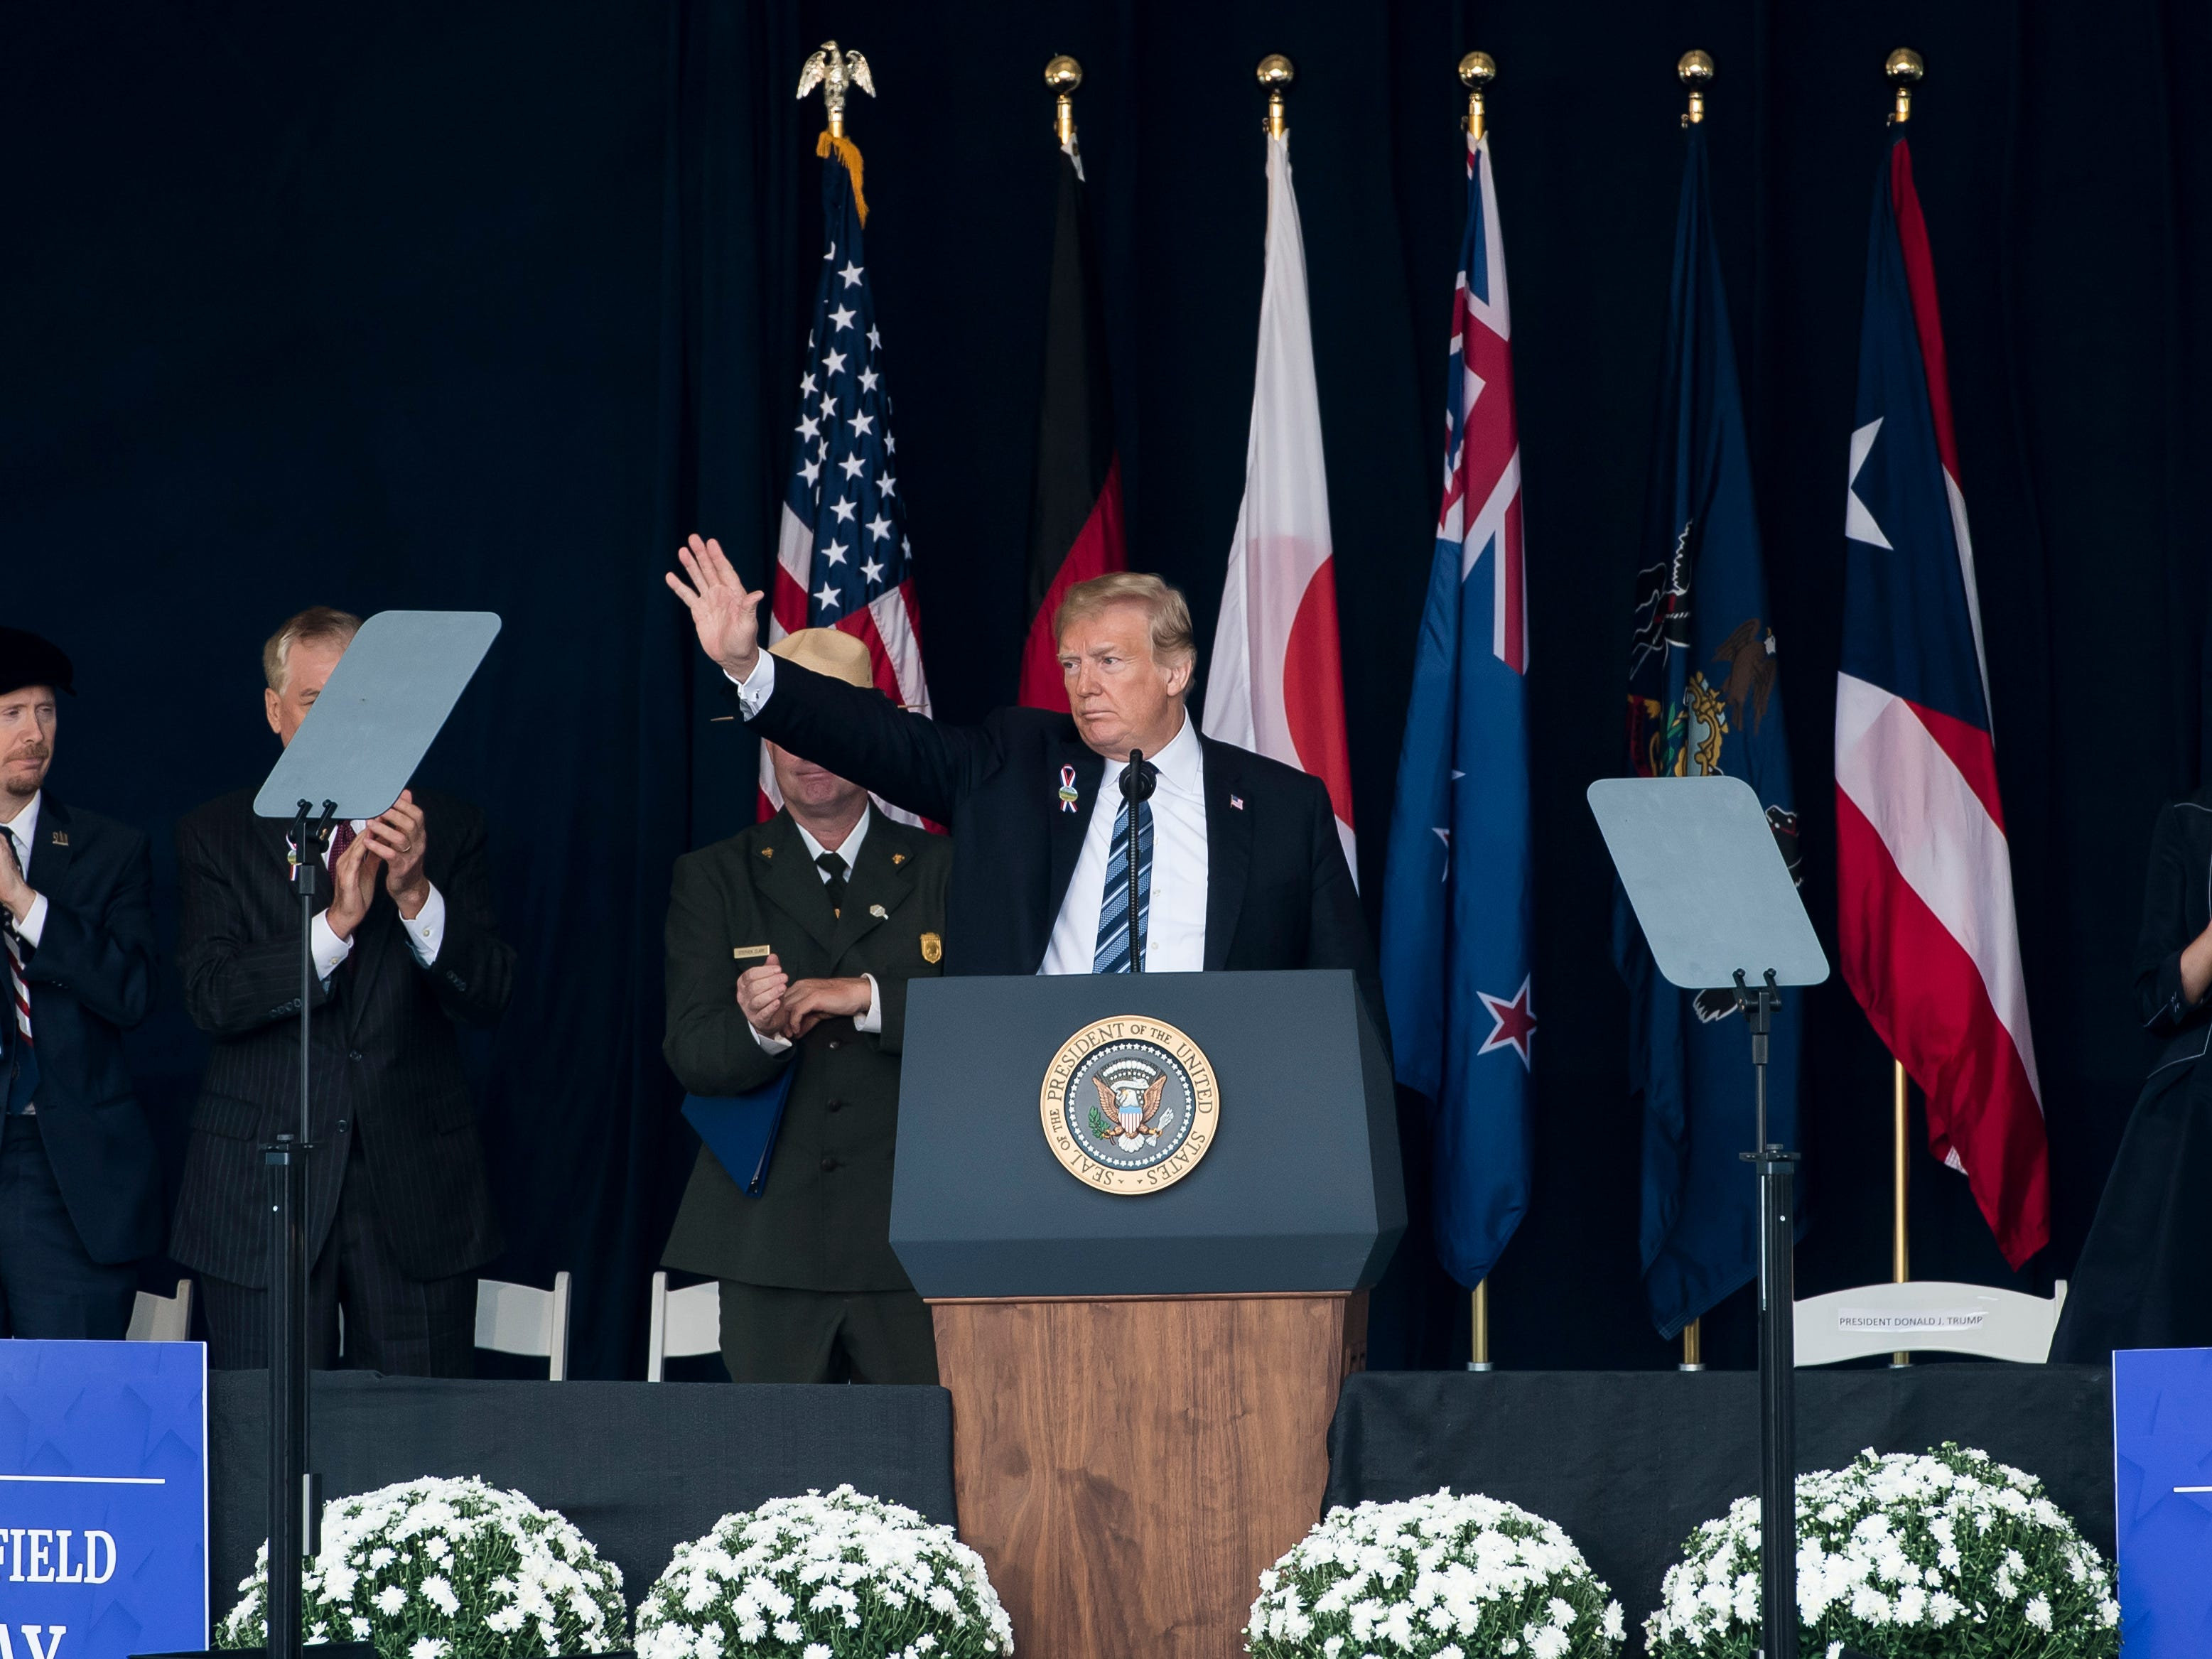 President Trump acknowledges the crowd after speaking at the Flight 93 National Memorial in Shanksville on Tuesday, September 11, 2018.